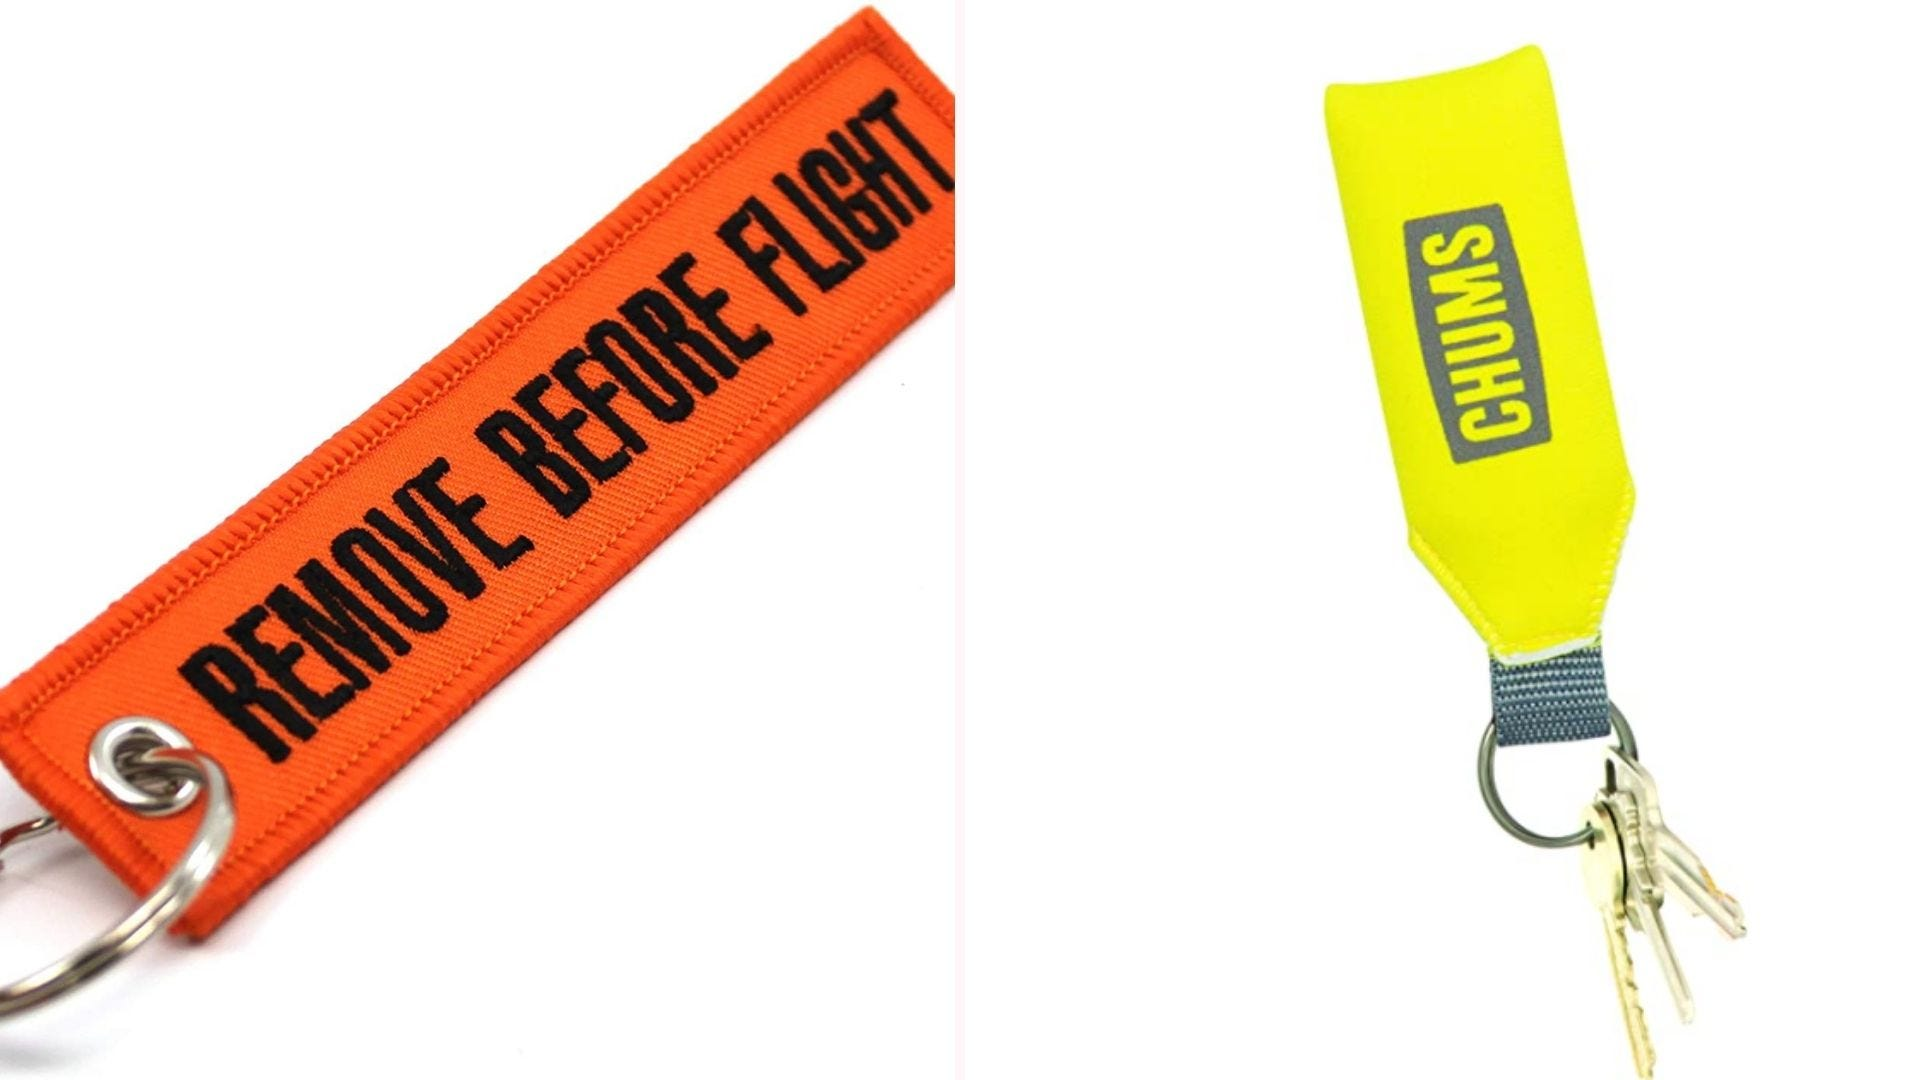 Brightly colored keychains